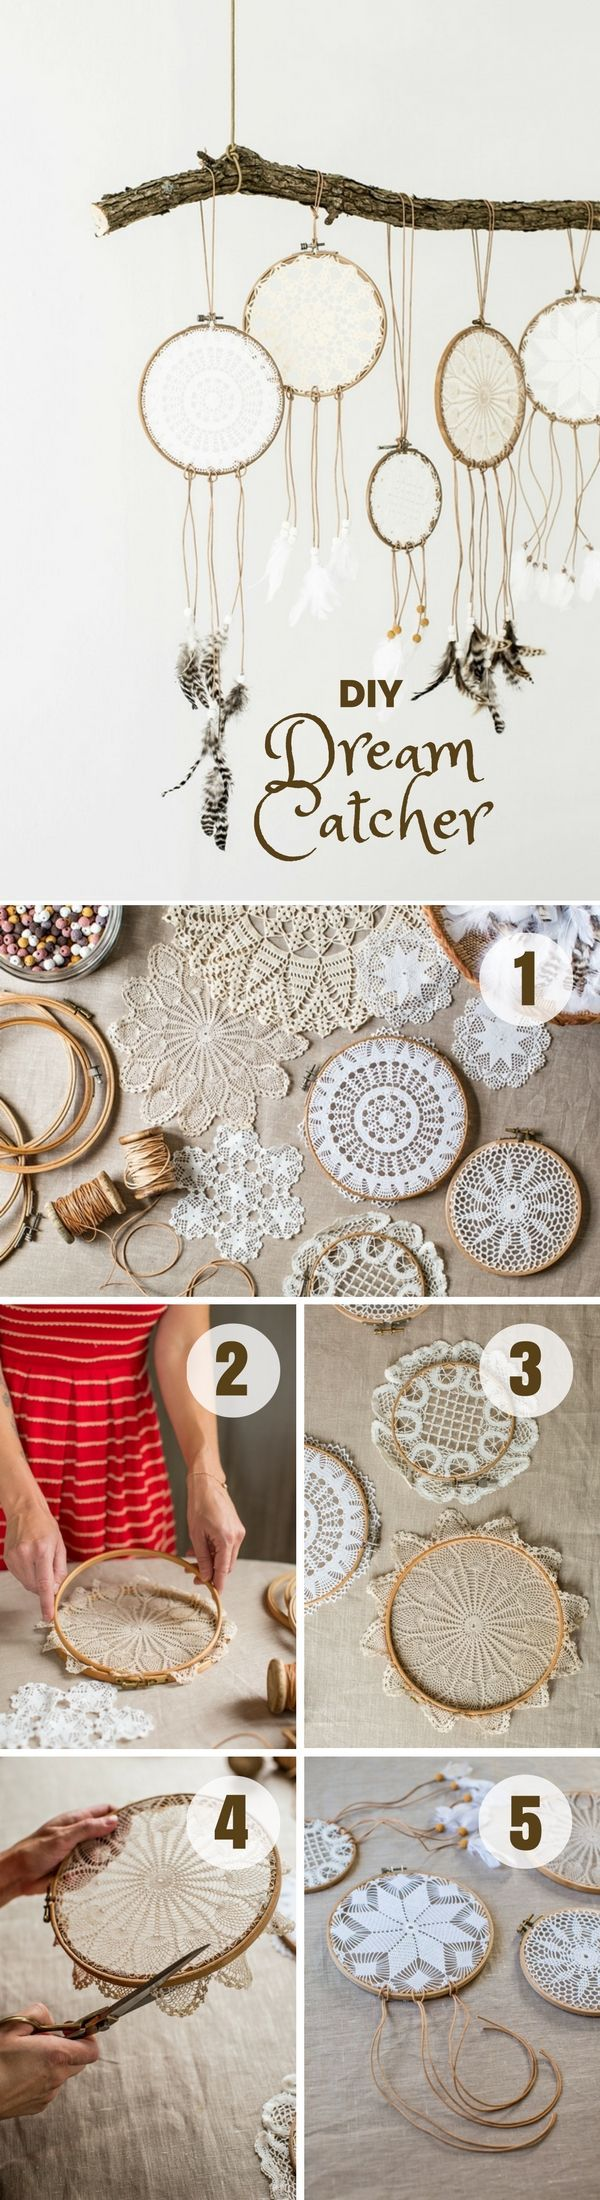 Check out how to easily make this DIY Dream Catcher /istandarddesign/